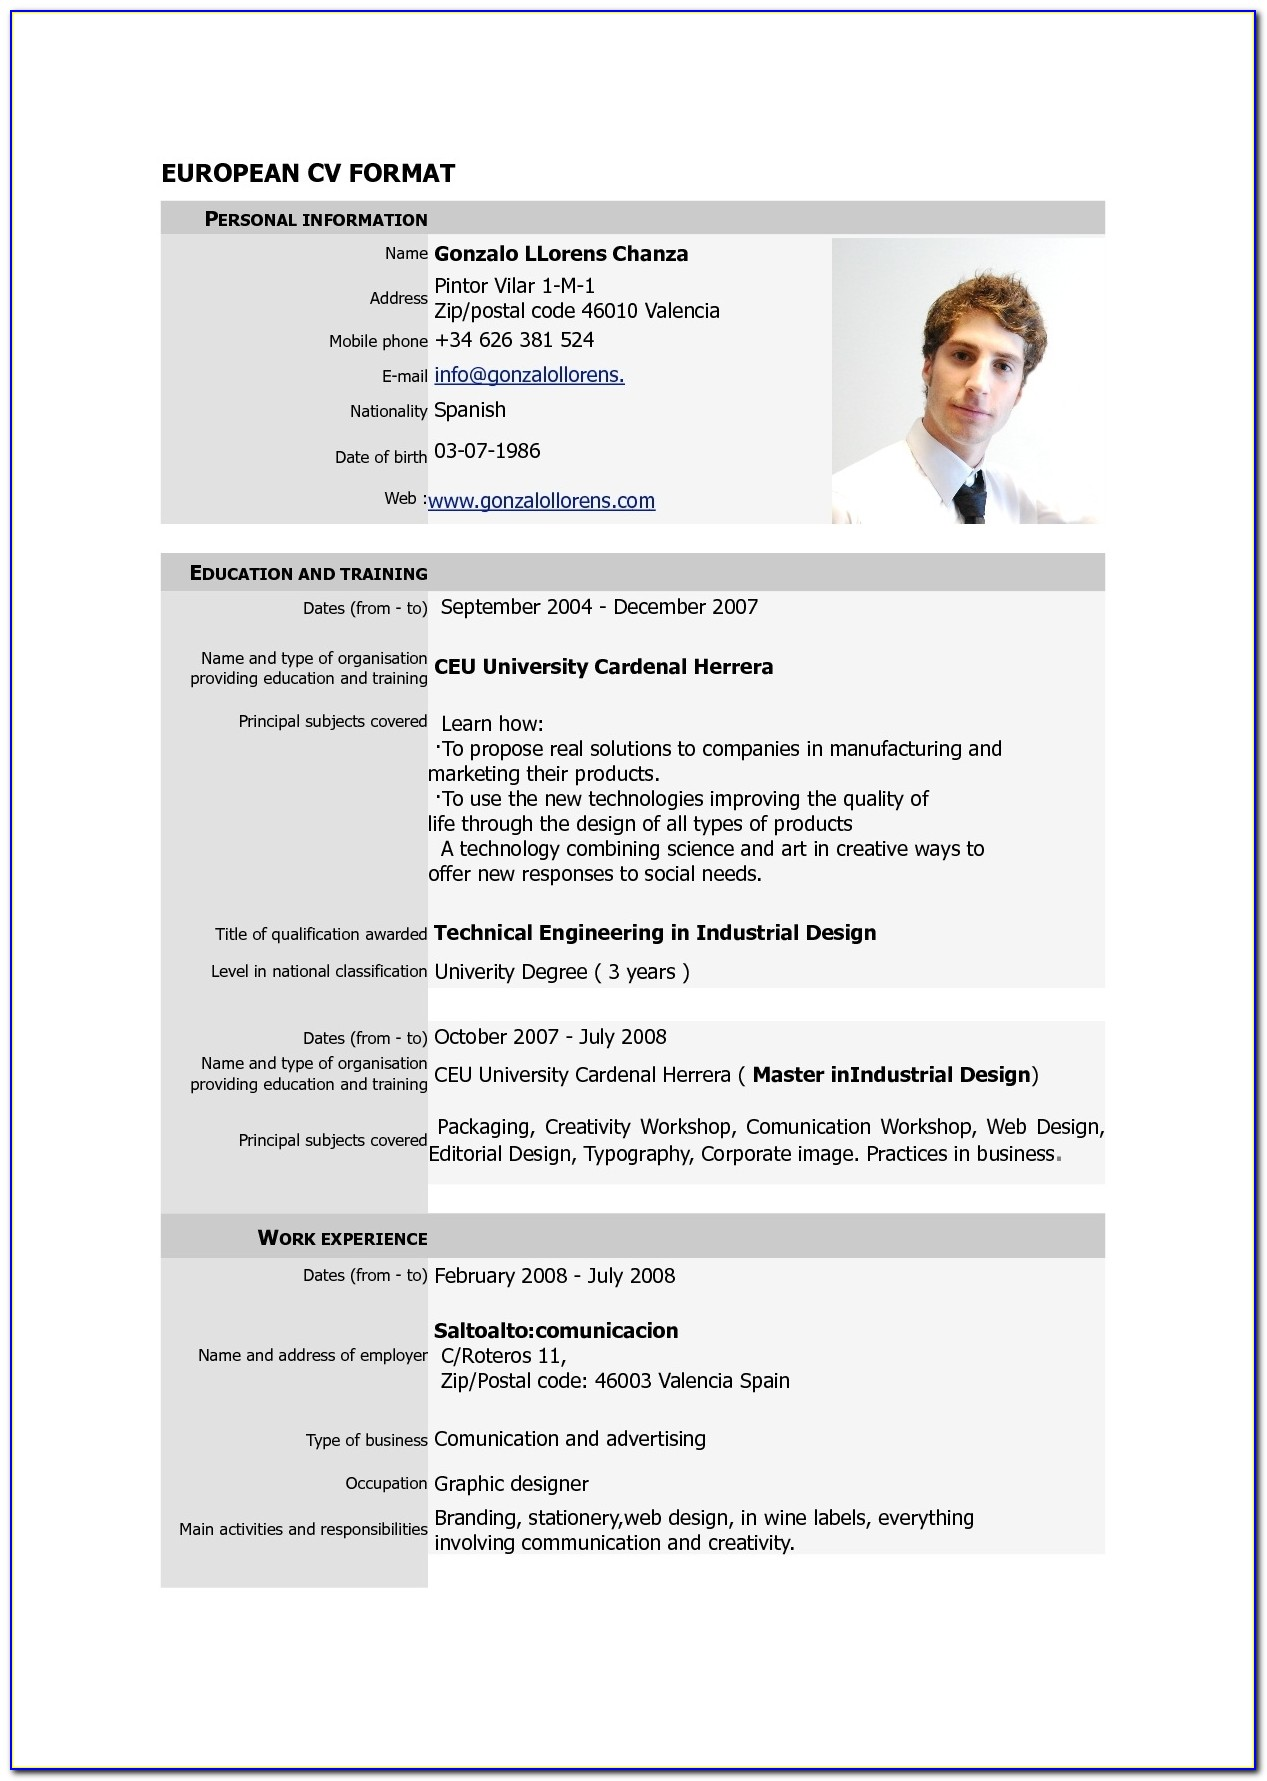 Resume Templates 2017 To Impress Your Employee | Resume Templates 2017 Intended For Best Resume Template 2017